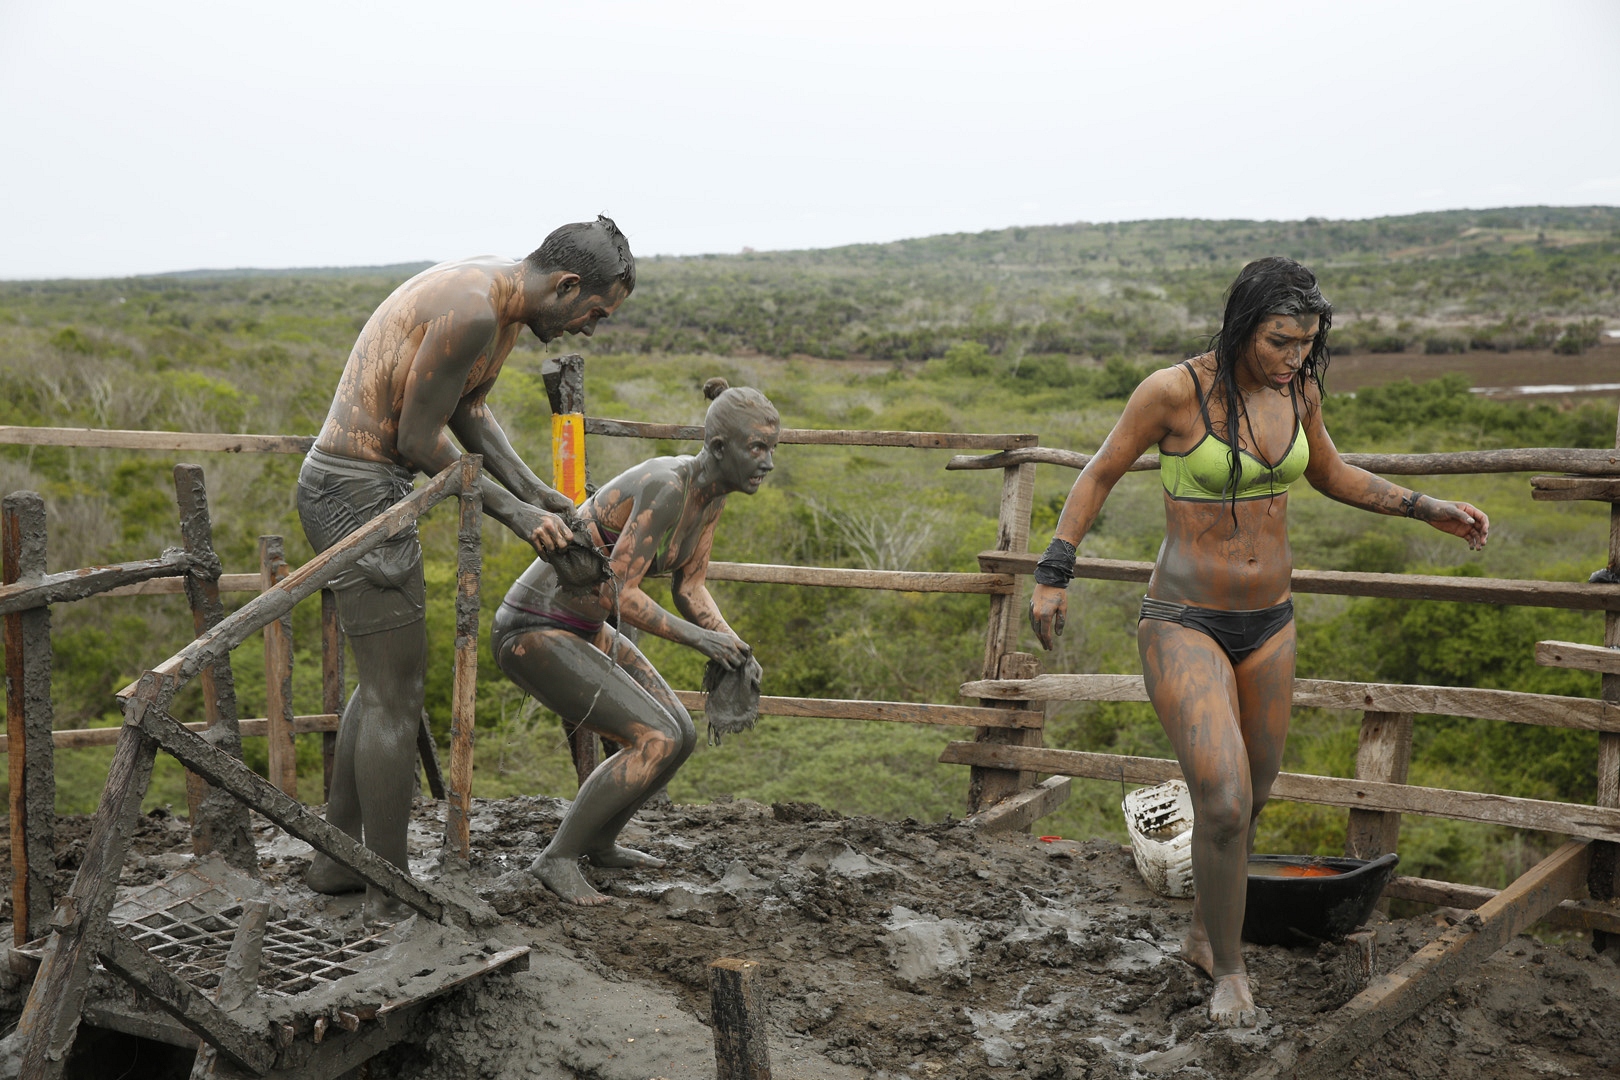 Korey, Ashley, and Dana climb up the Totumo Mud Volcano.